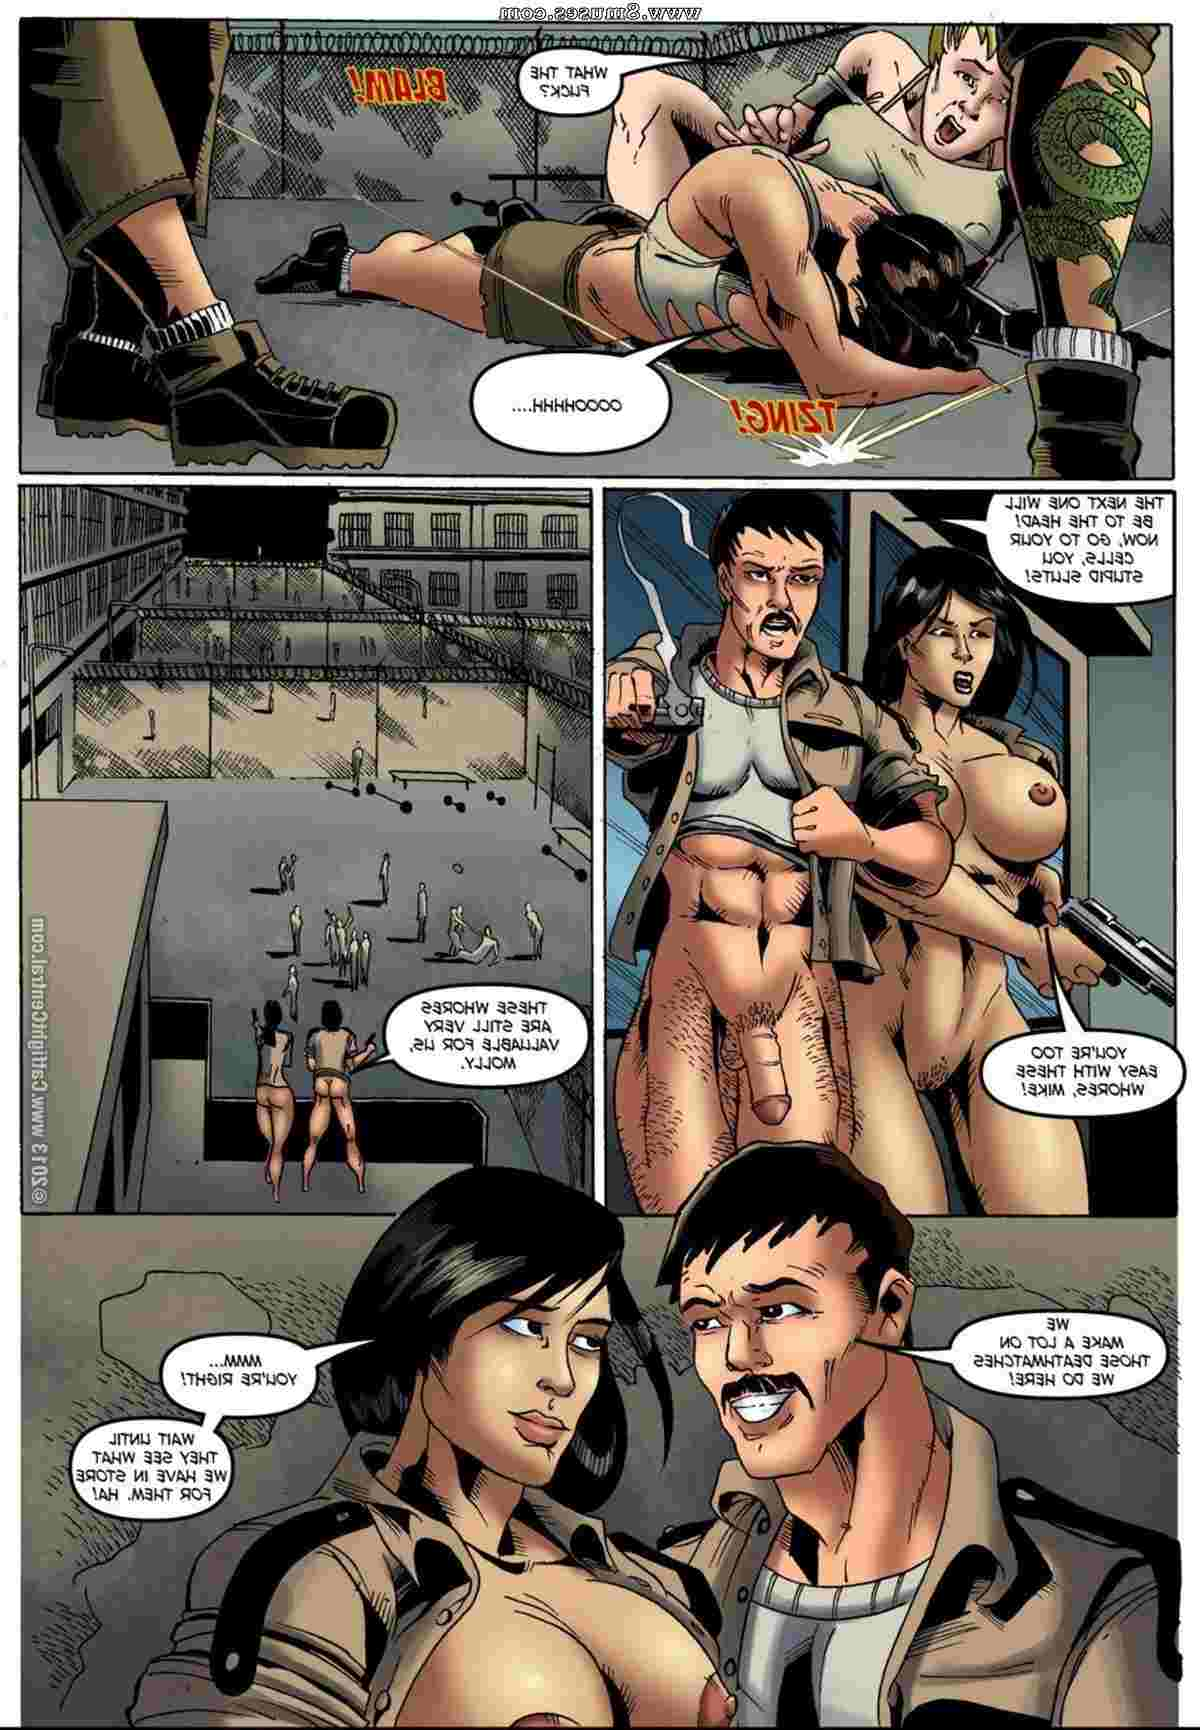 Central-Comics/Catfight-Central/Prison-Bitches Prison_Bitches__8muses_-_Sex_and_Porn_Comics_10.jpg